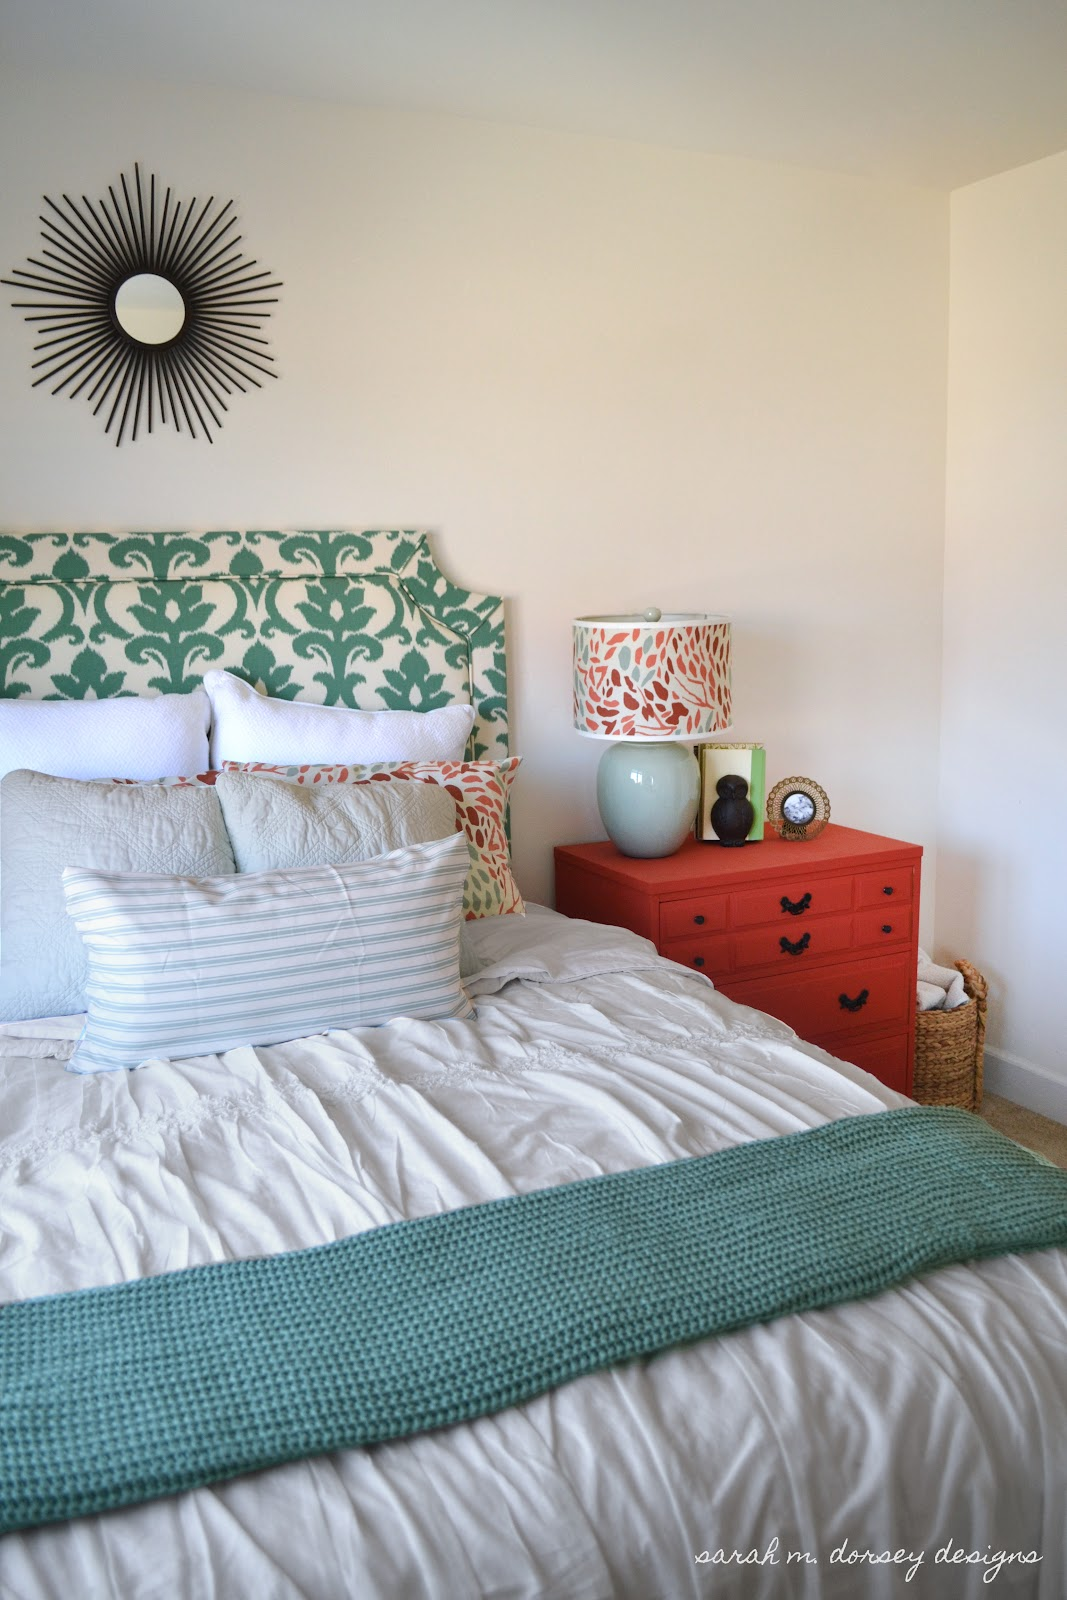 Sarah m dorsey designs guest bedroom updates for Small mirrors above bed